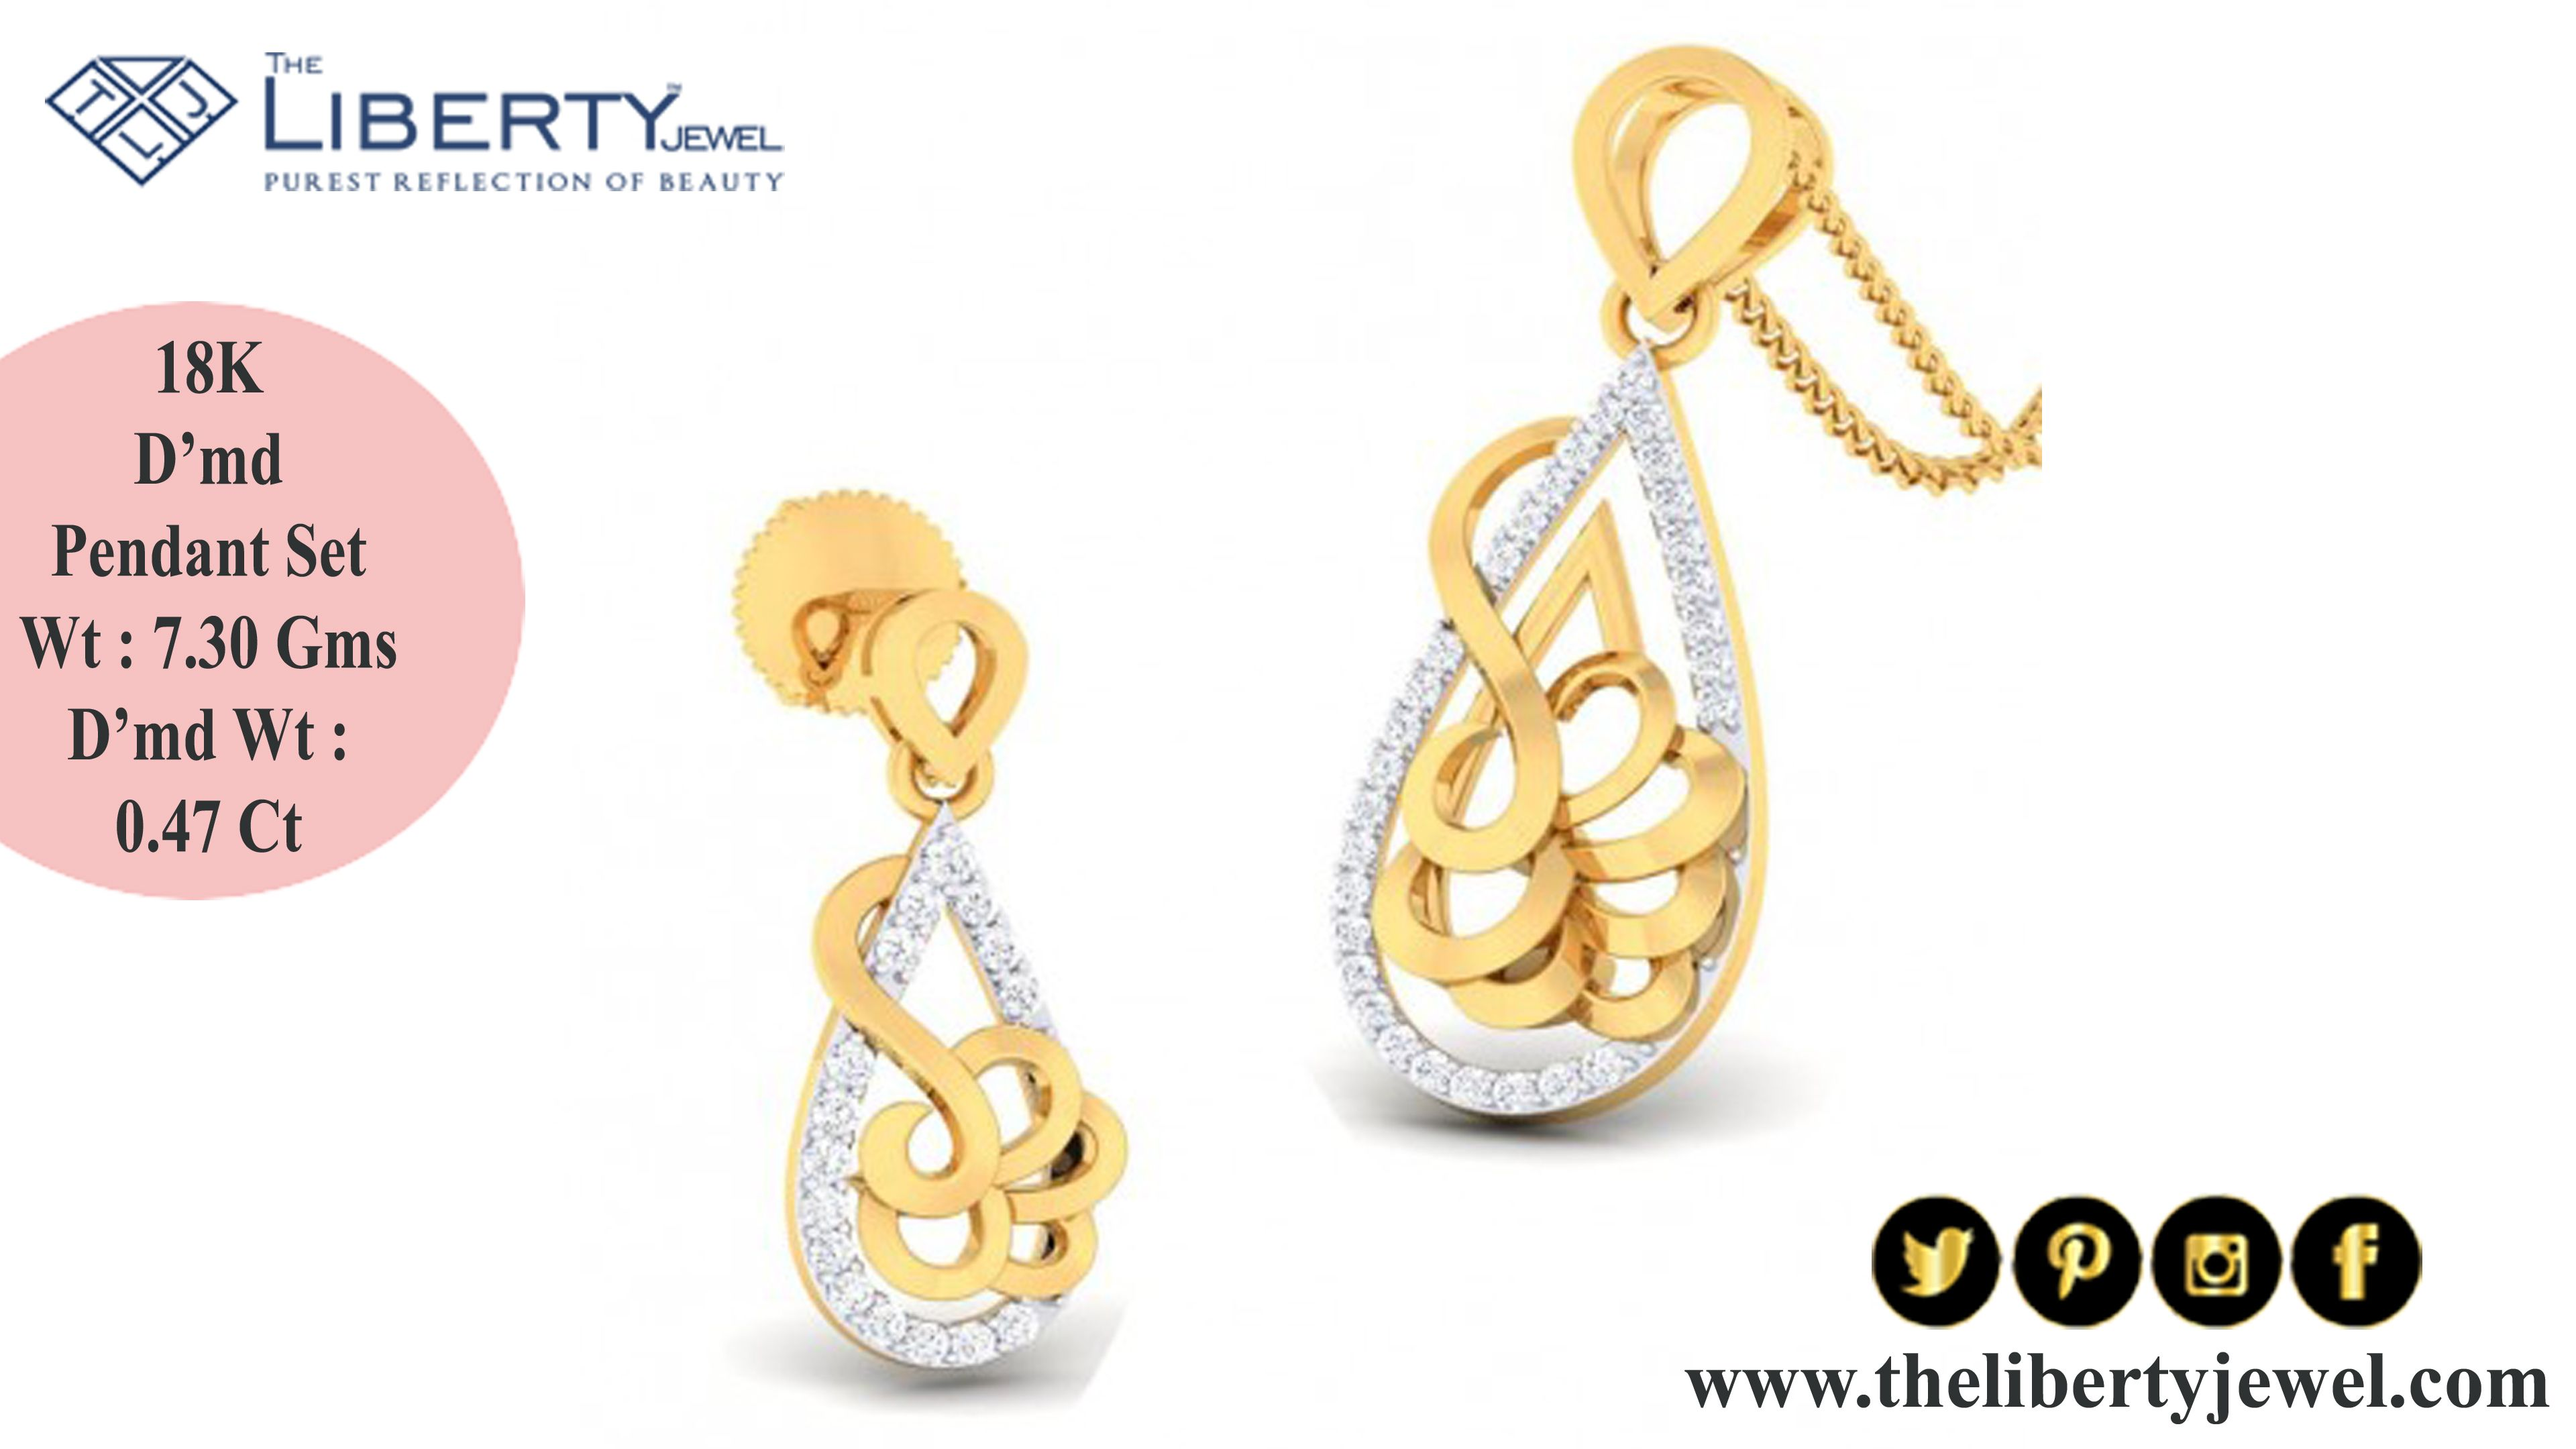 Special limitless diamond pendant set collection of jewellery for